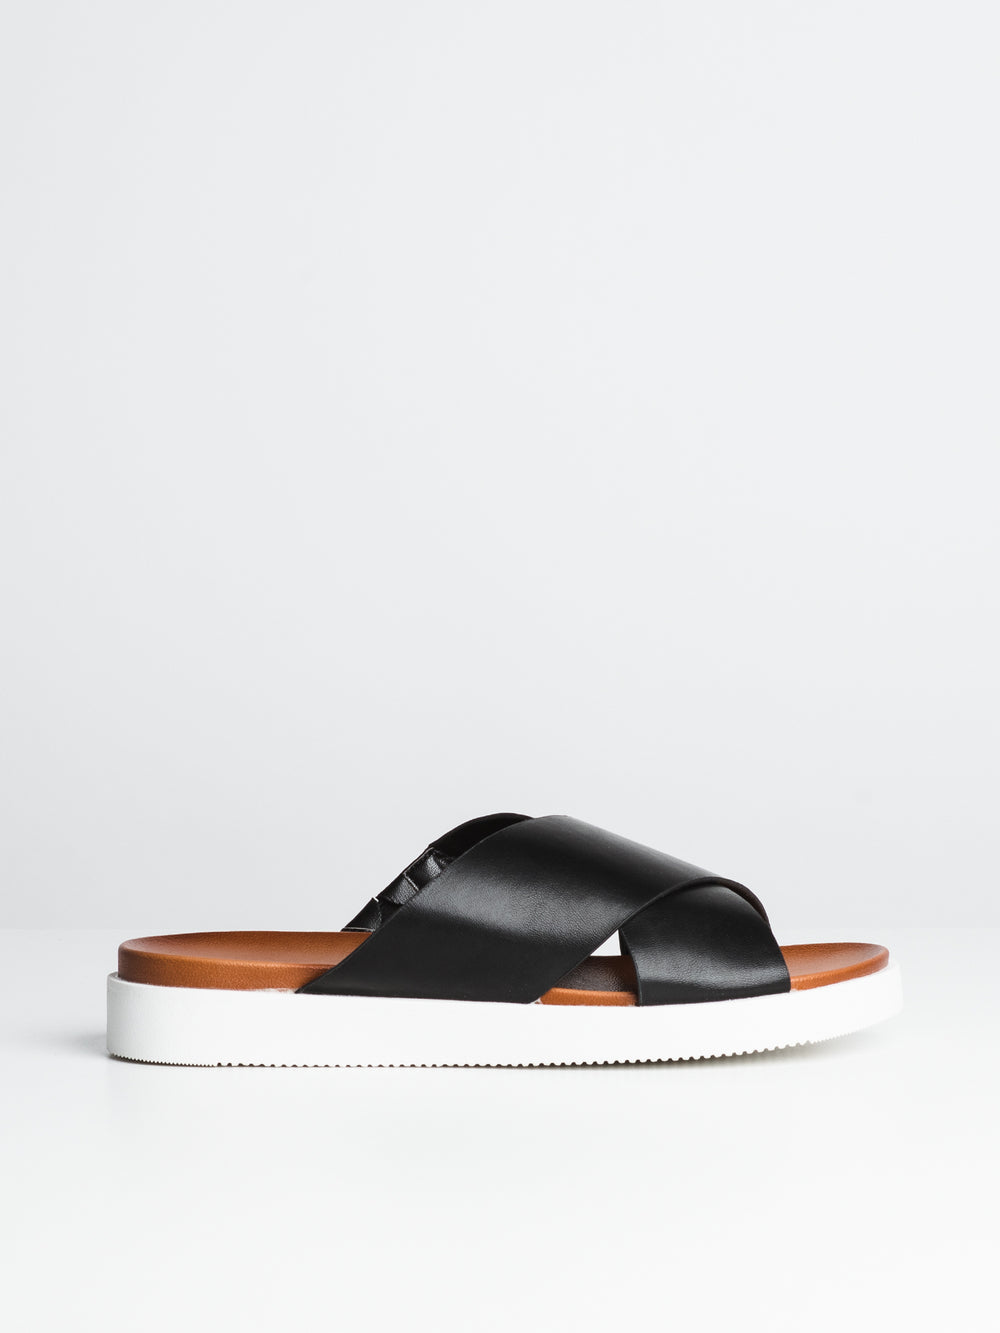 WOMENS CANDACE - BLACK-D2